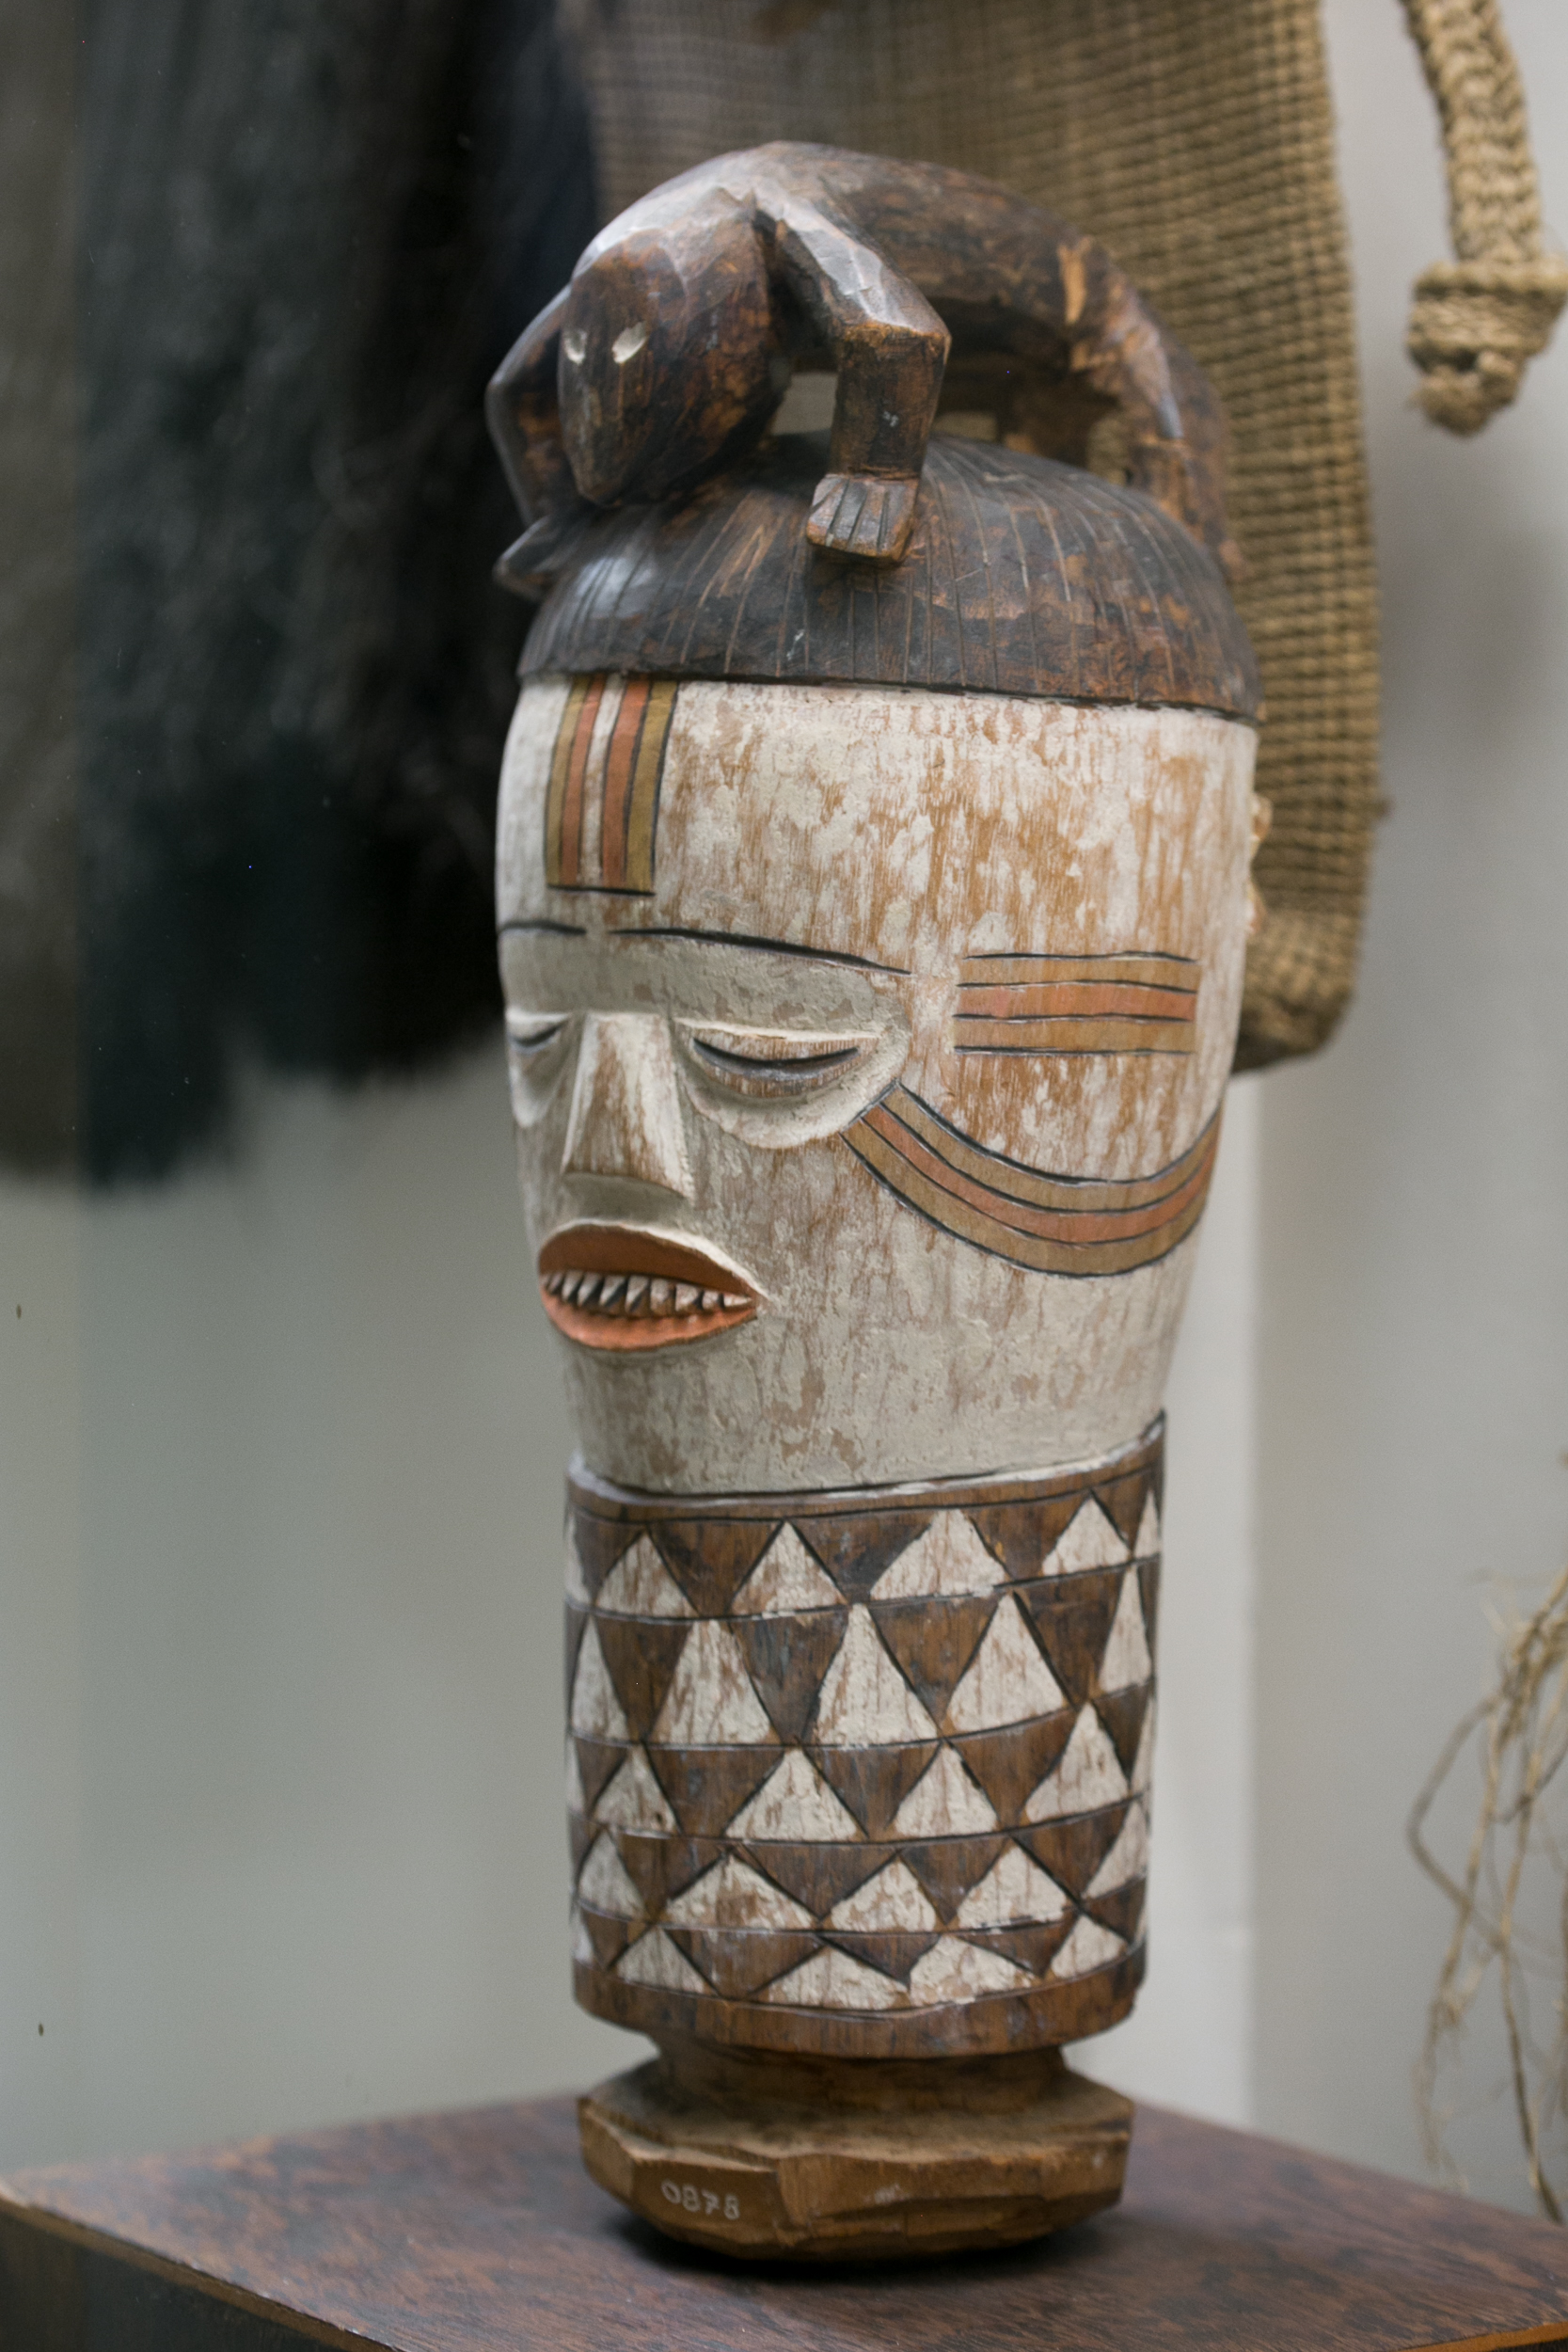 musee-africain-namur-belgique-art-africain-galerie-lz-arts-collection-masques-statues-congo-8.jpg